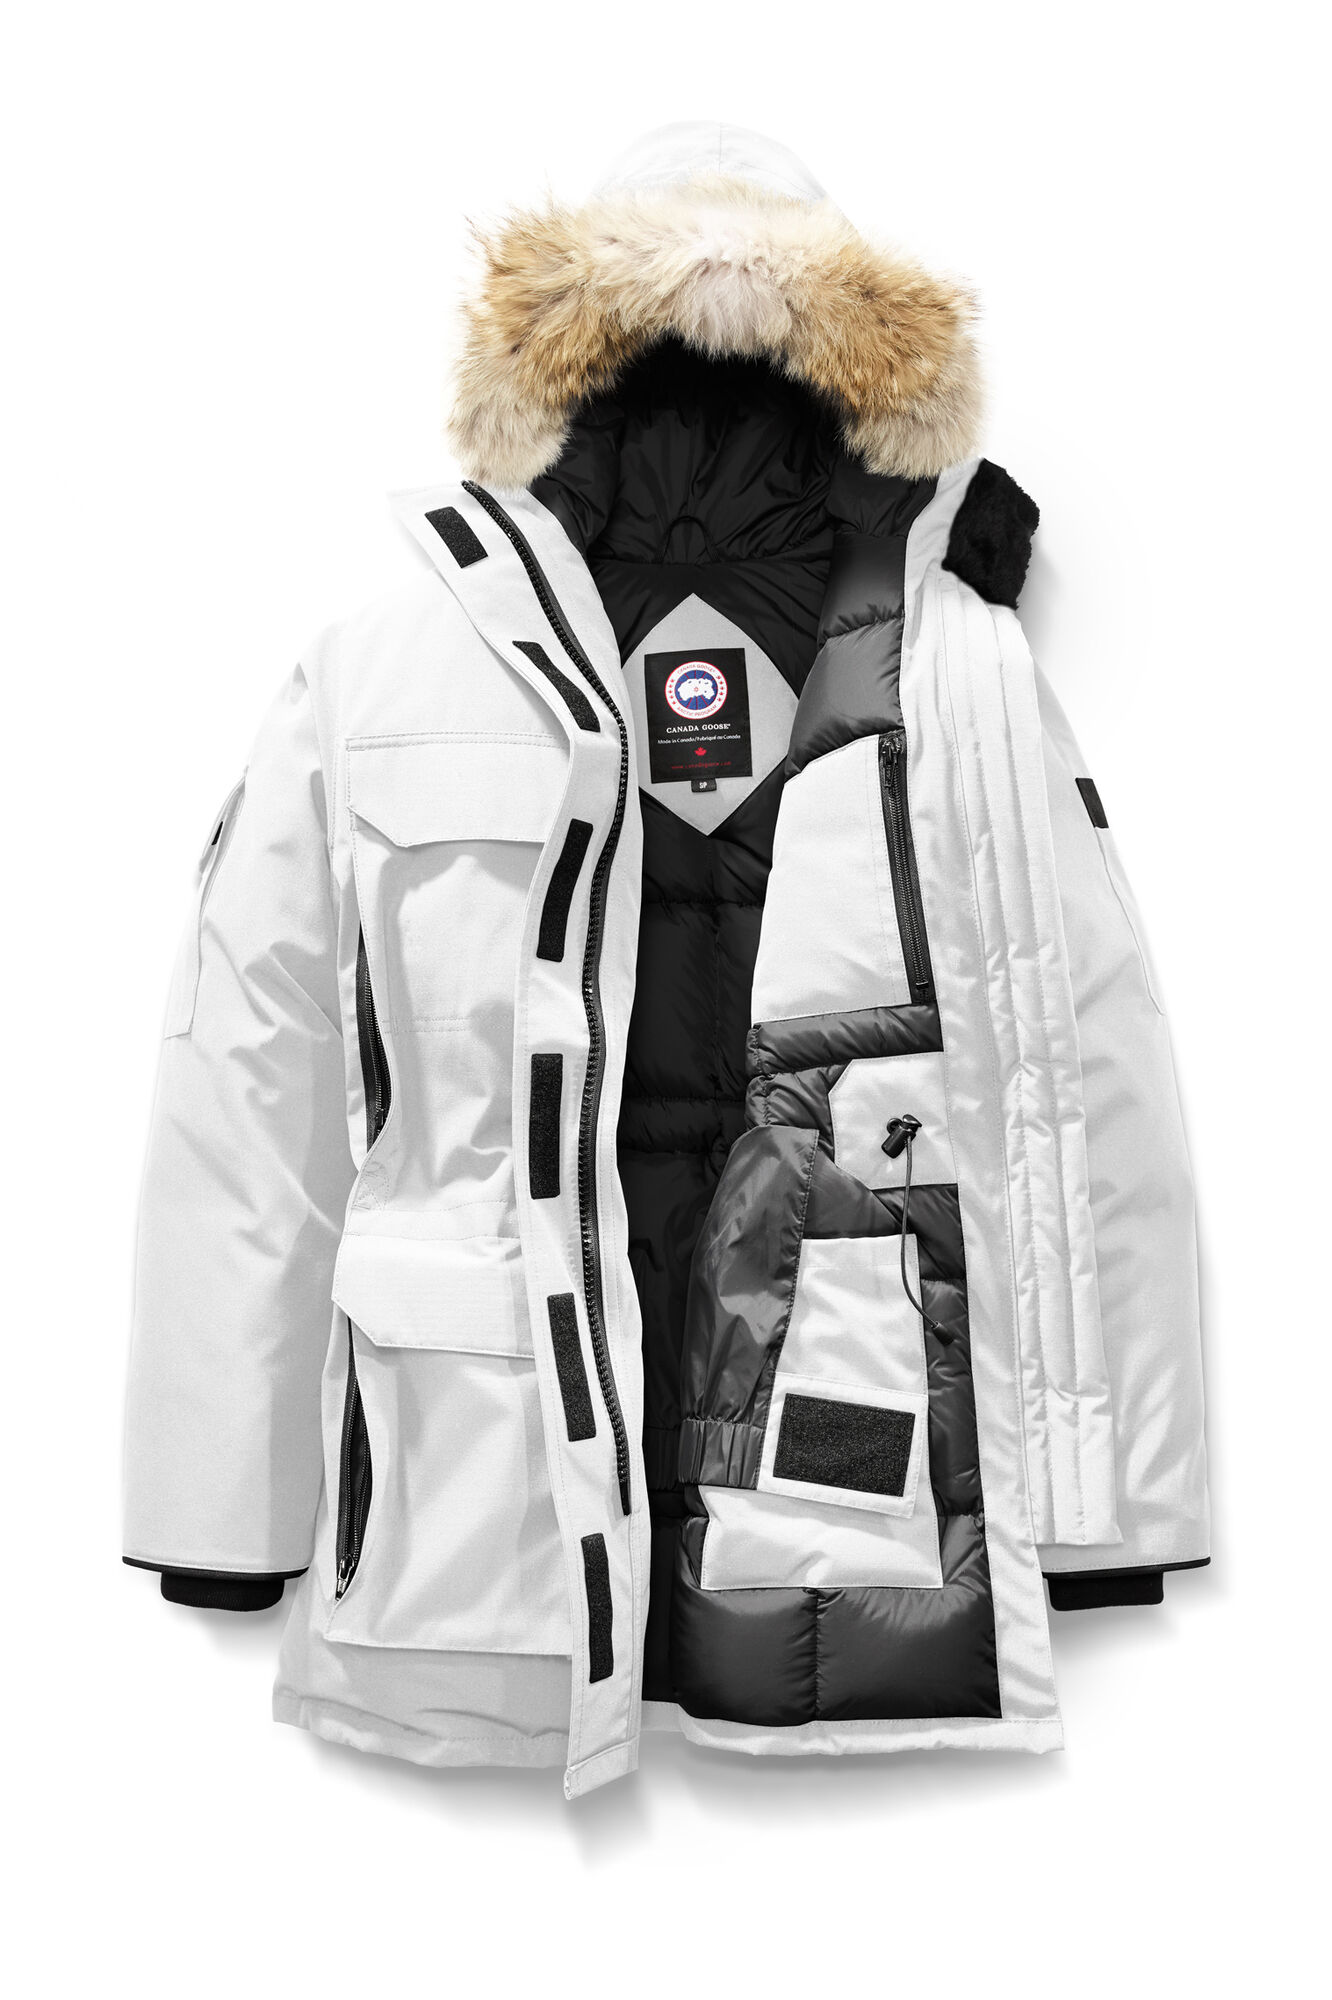 Canada Goose womens outlet 2016 - Women's Arctic Program Expedition Parka | Canada Goose?